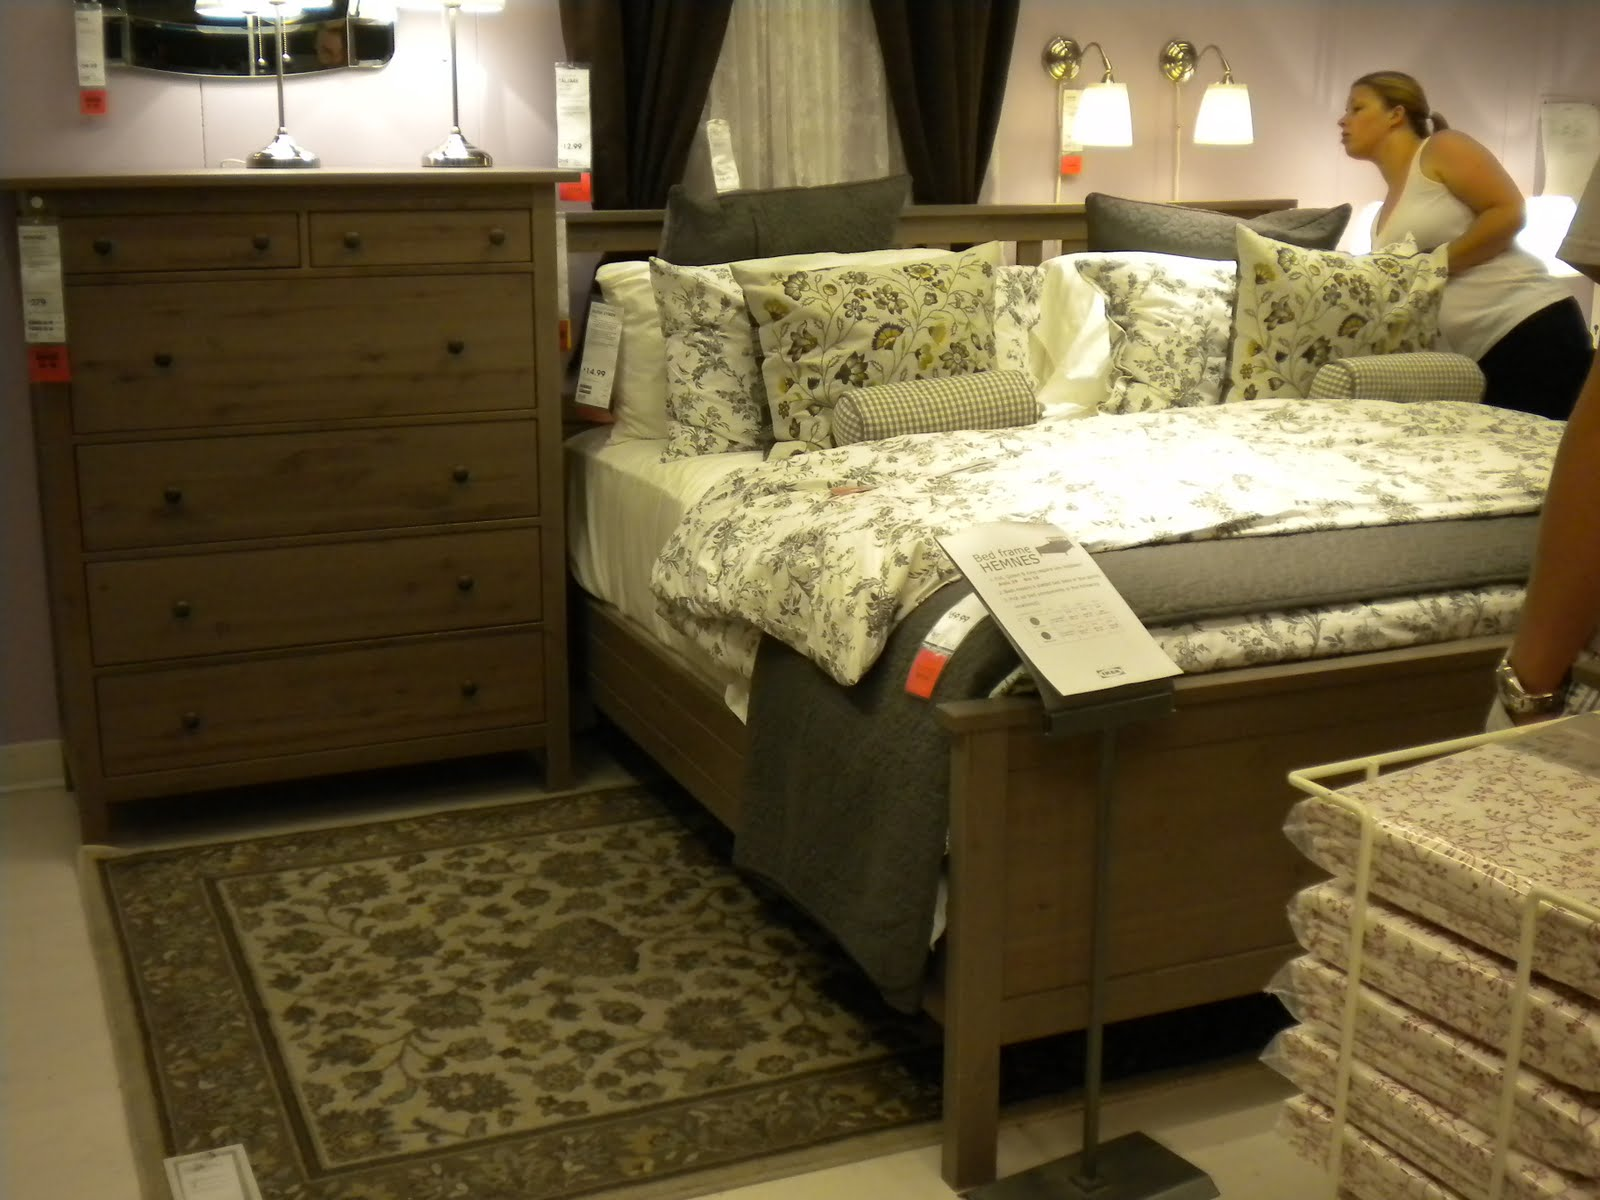 ikea-white-hemnes-bedroom-furniture-photo-14